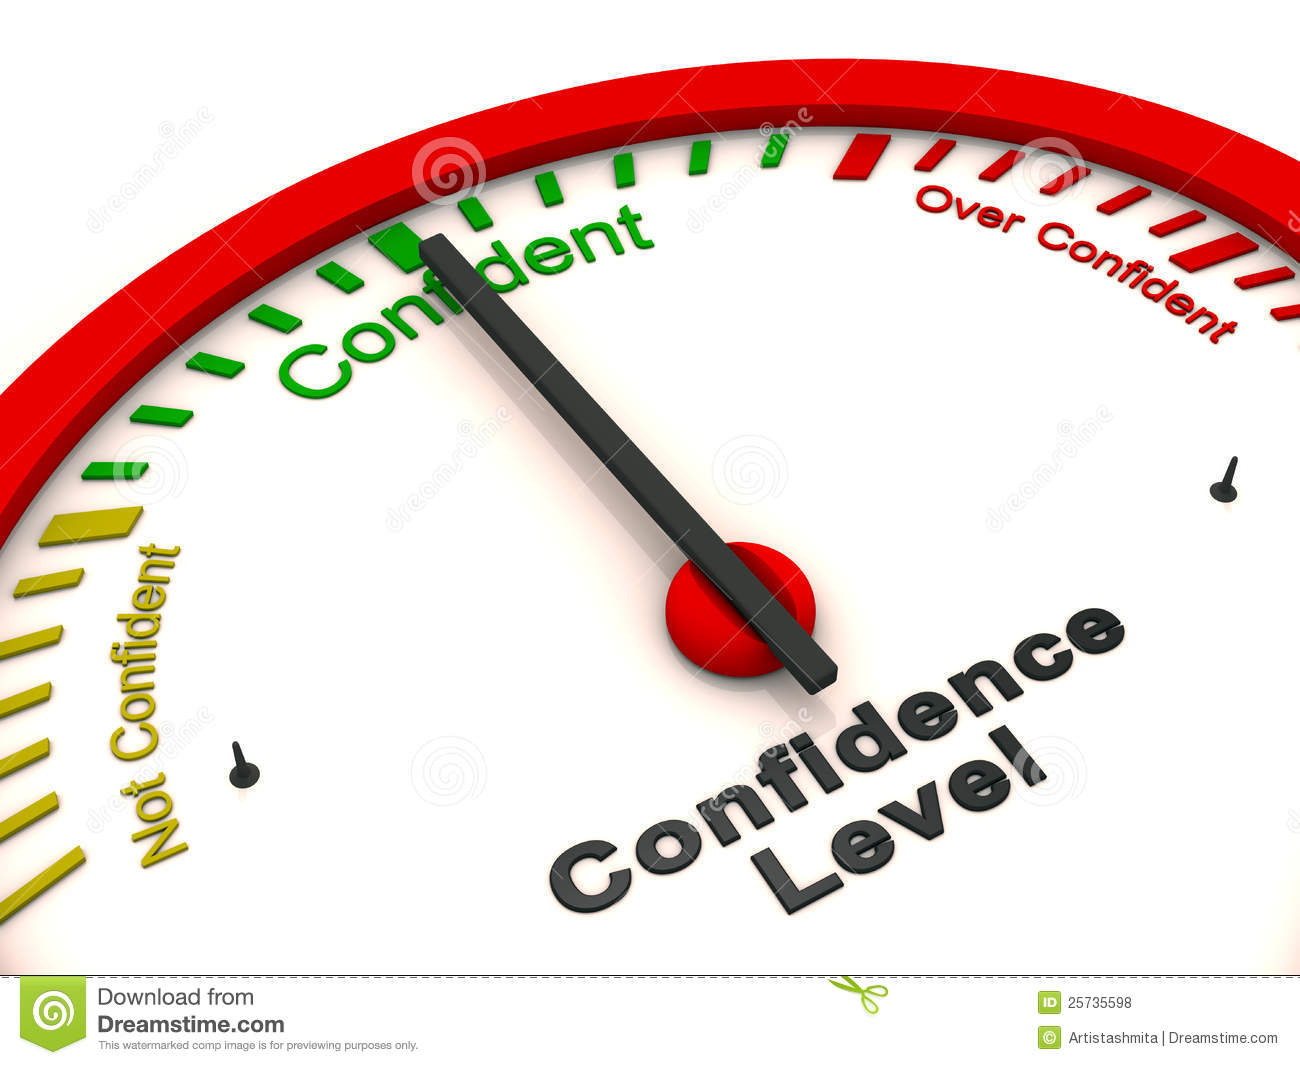 how to find confidence level